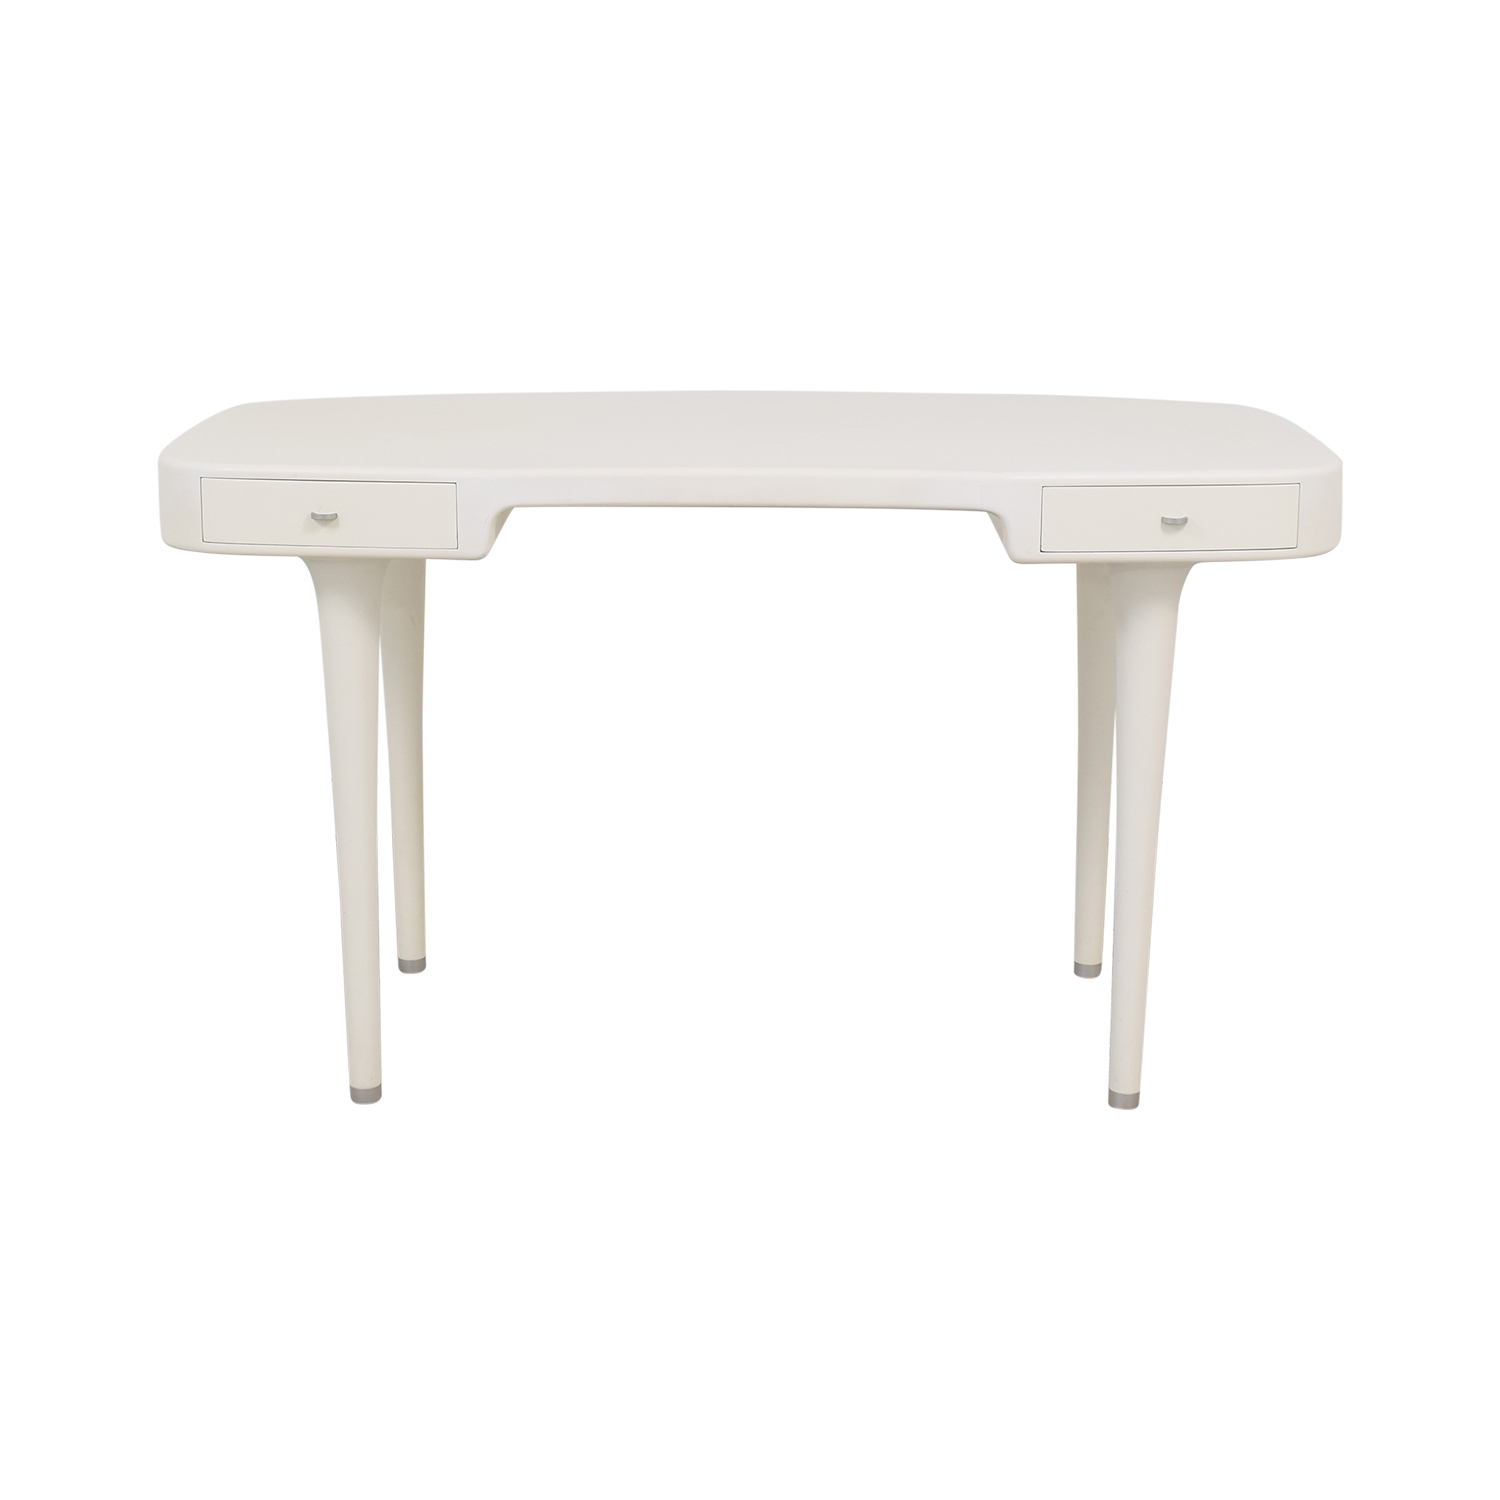 Cappellini Capellini Riga Desk by Marc Newson